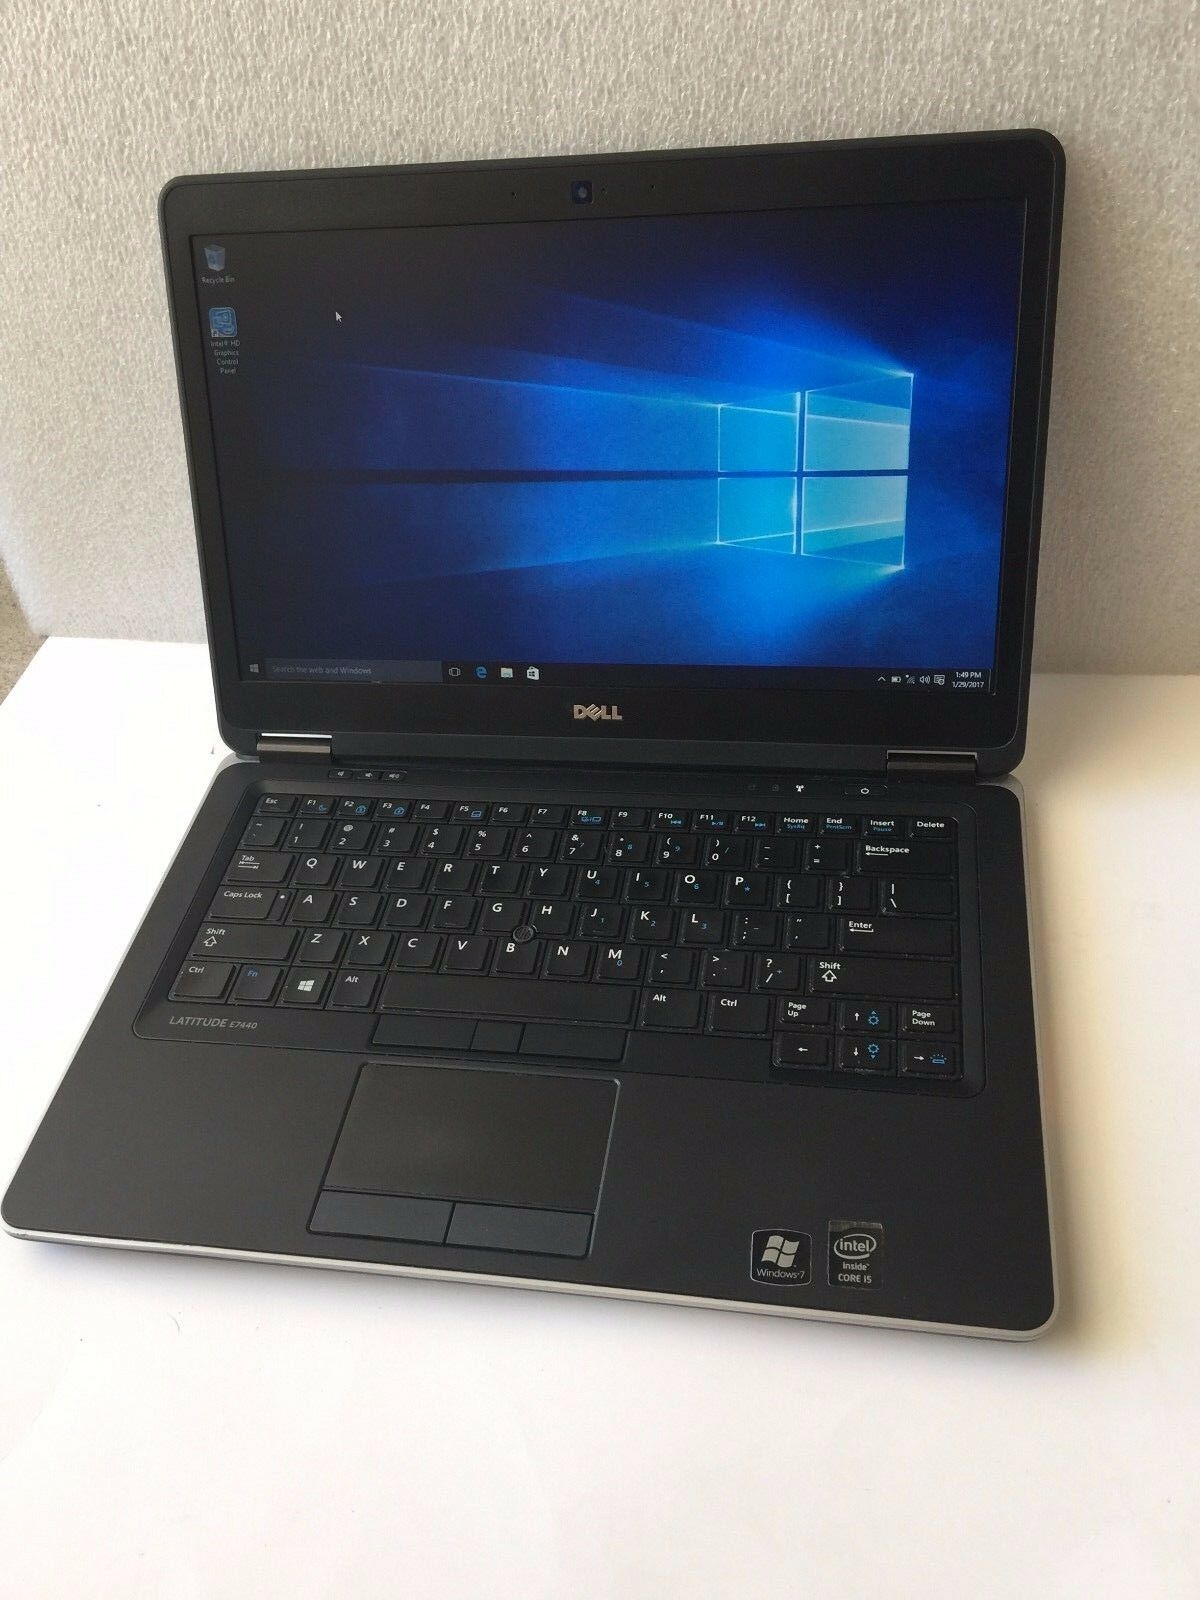 Dell Ultrabook E7440 Core i5-4300u 1.9GHz 8GB 500GB Webcam Backlit Win 7 Laptop